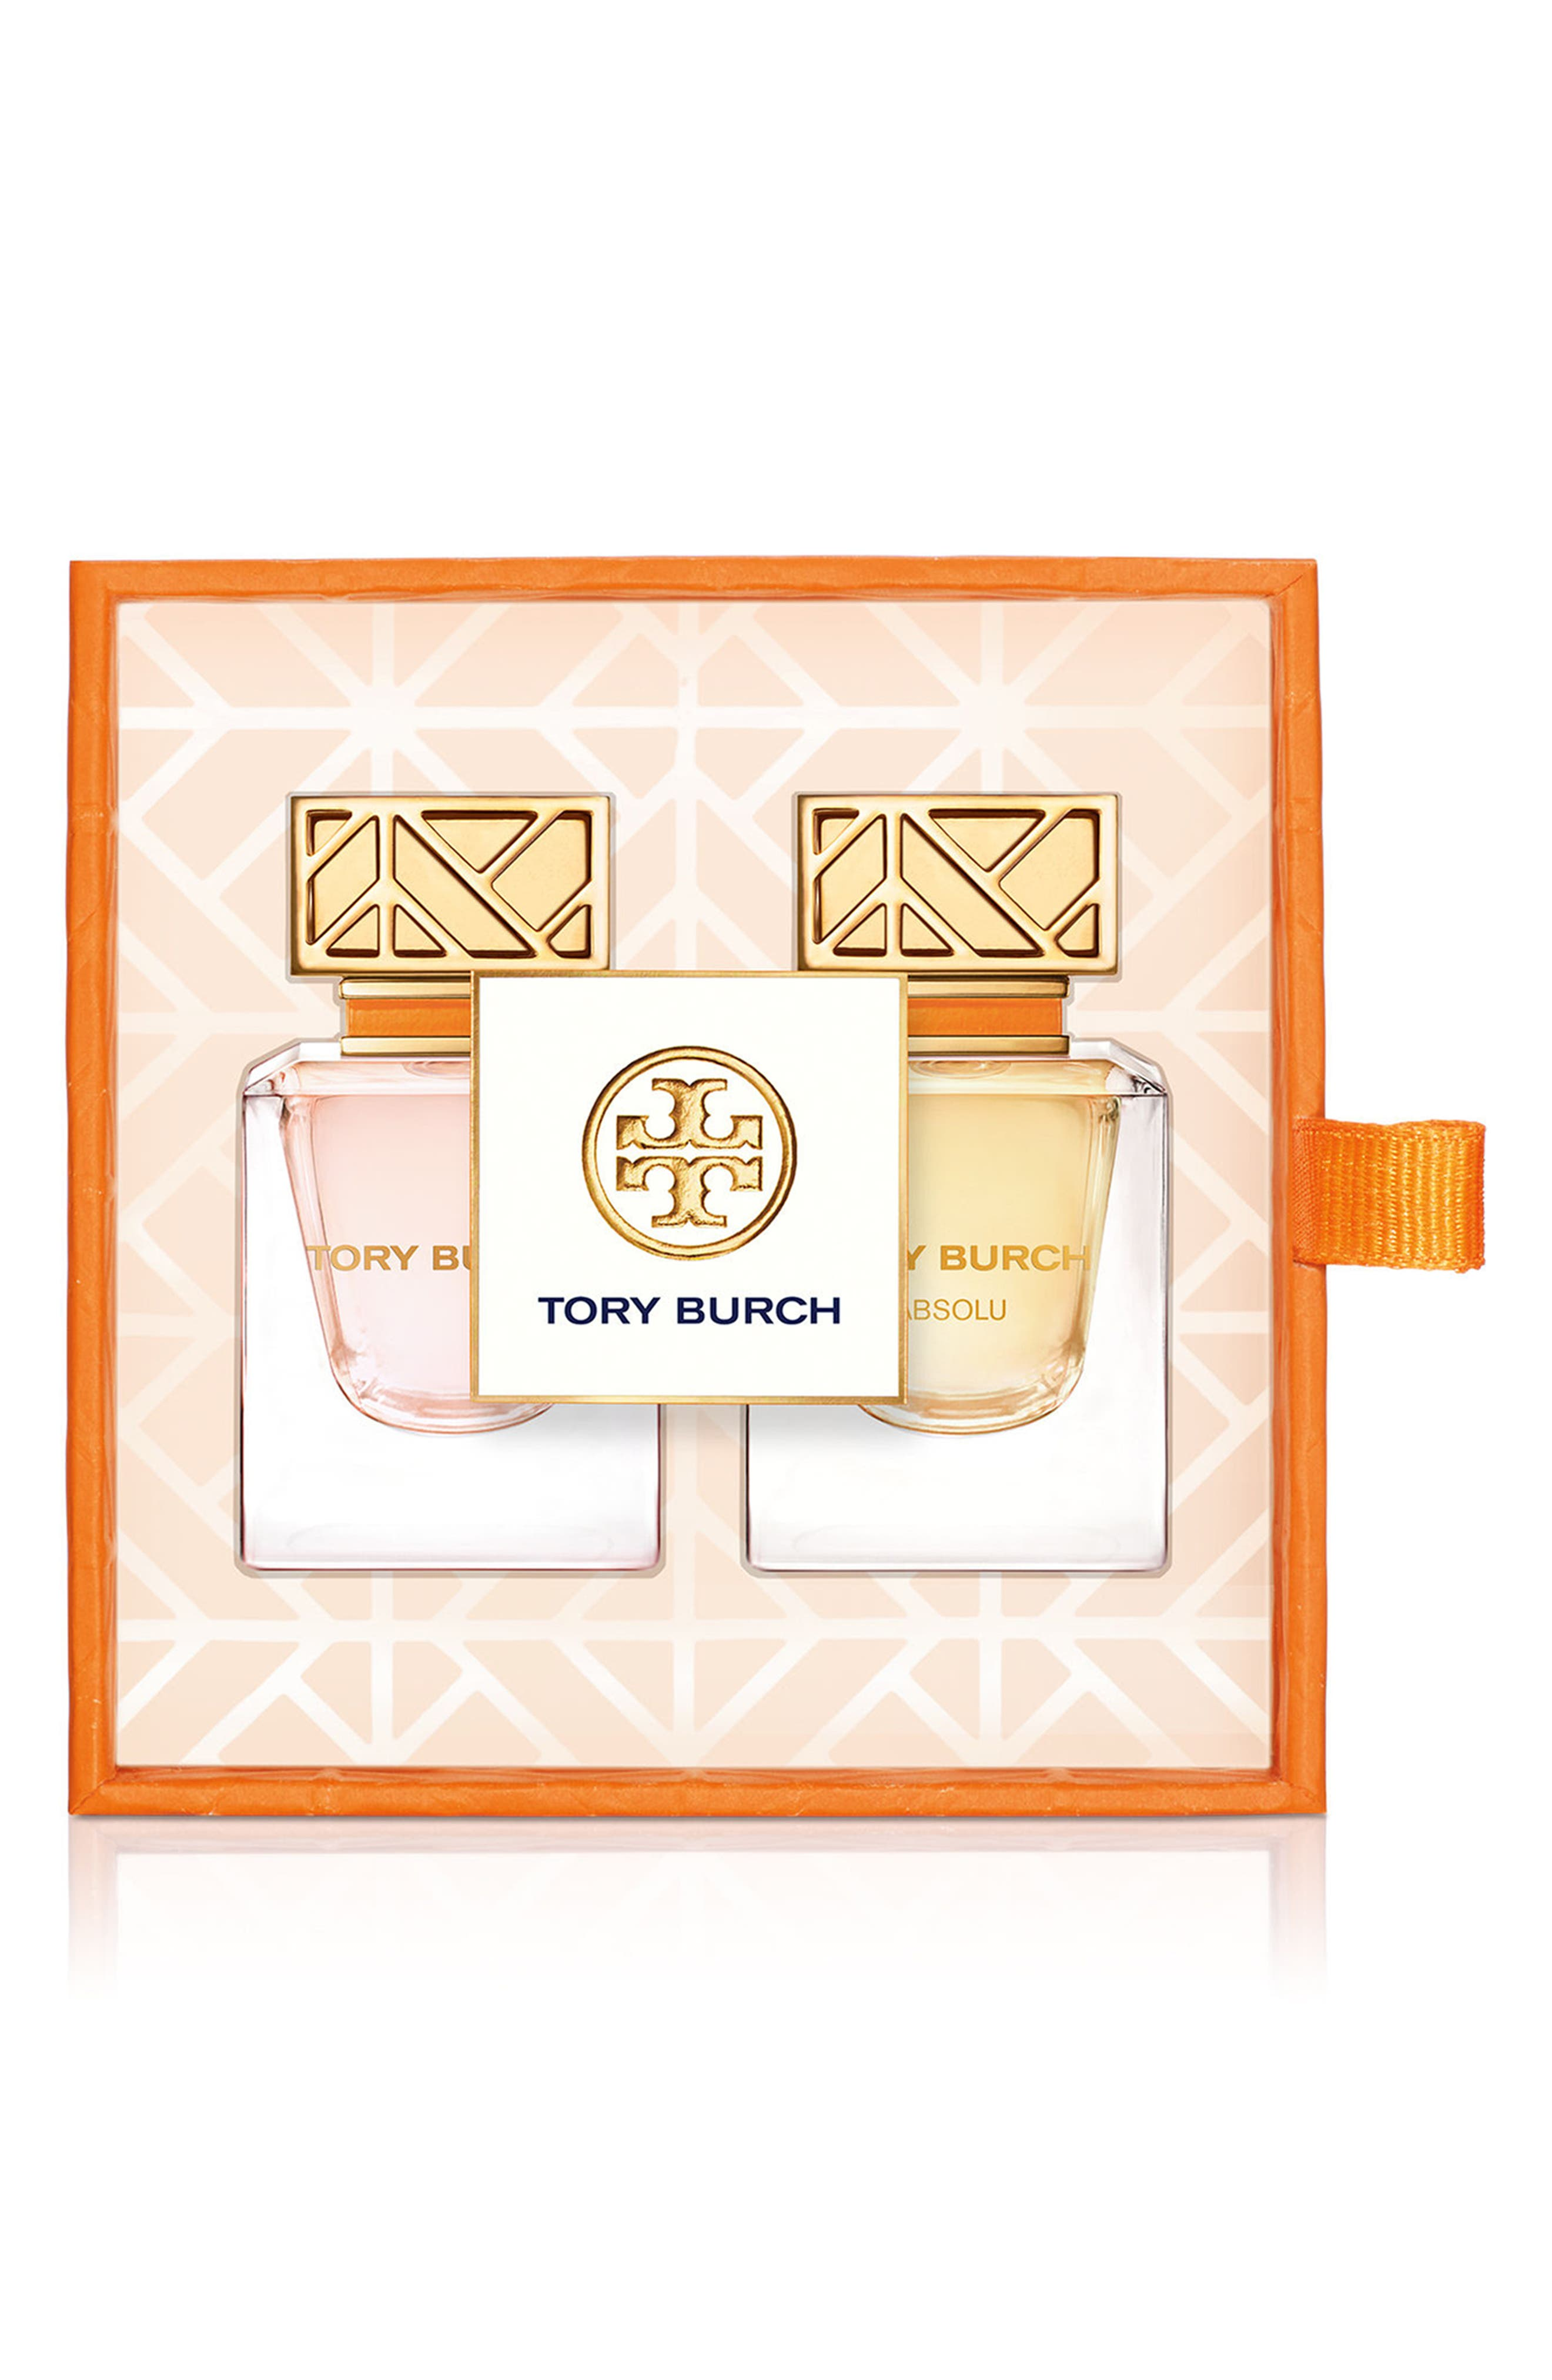 Tory Burch Deluxe Mini Duo ($28 Value)